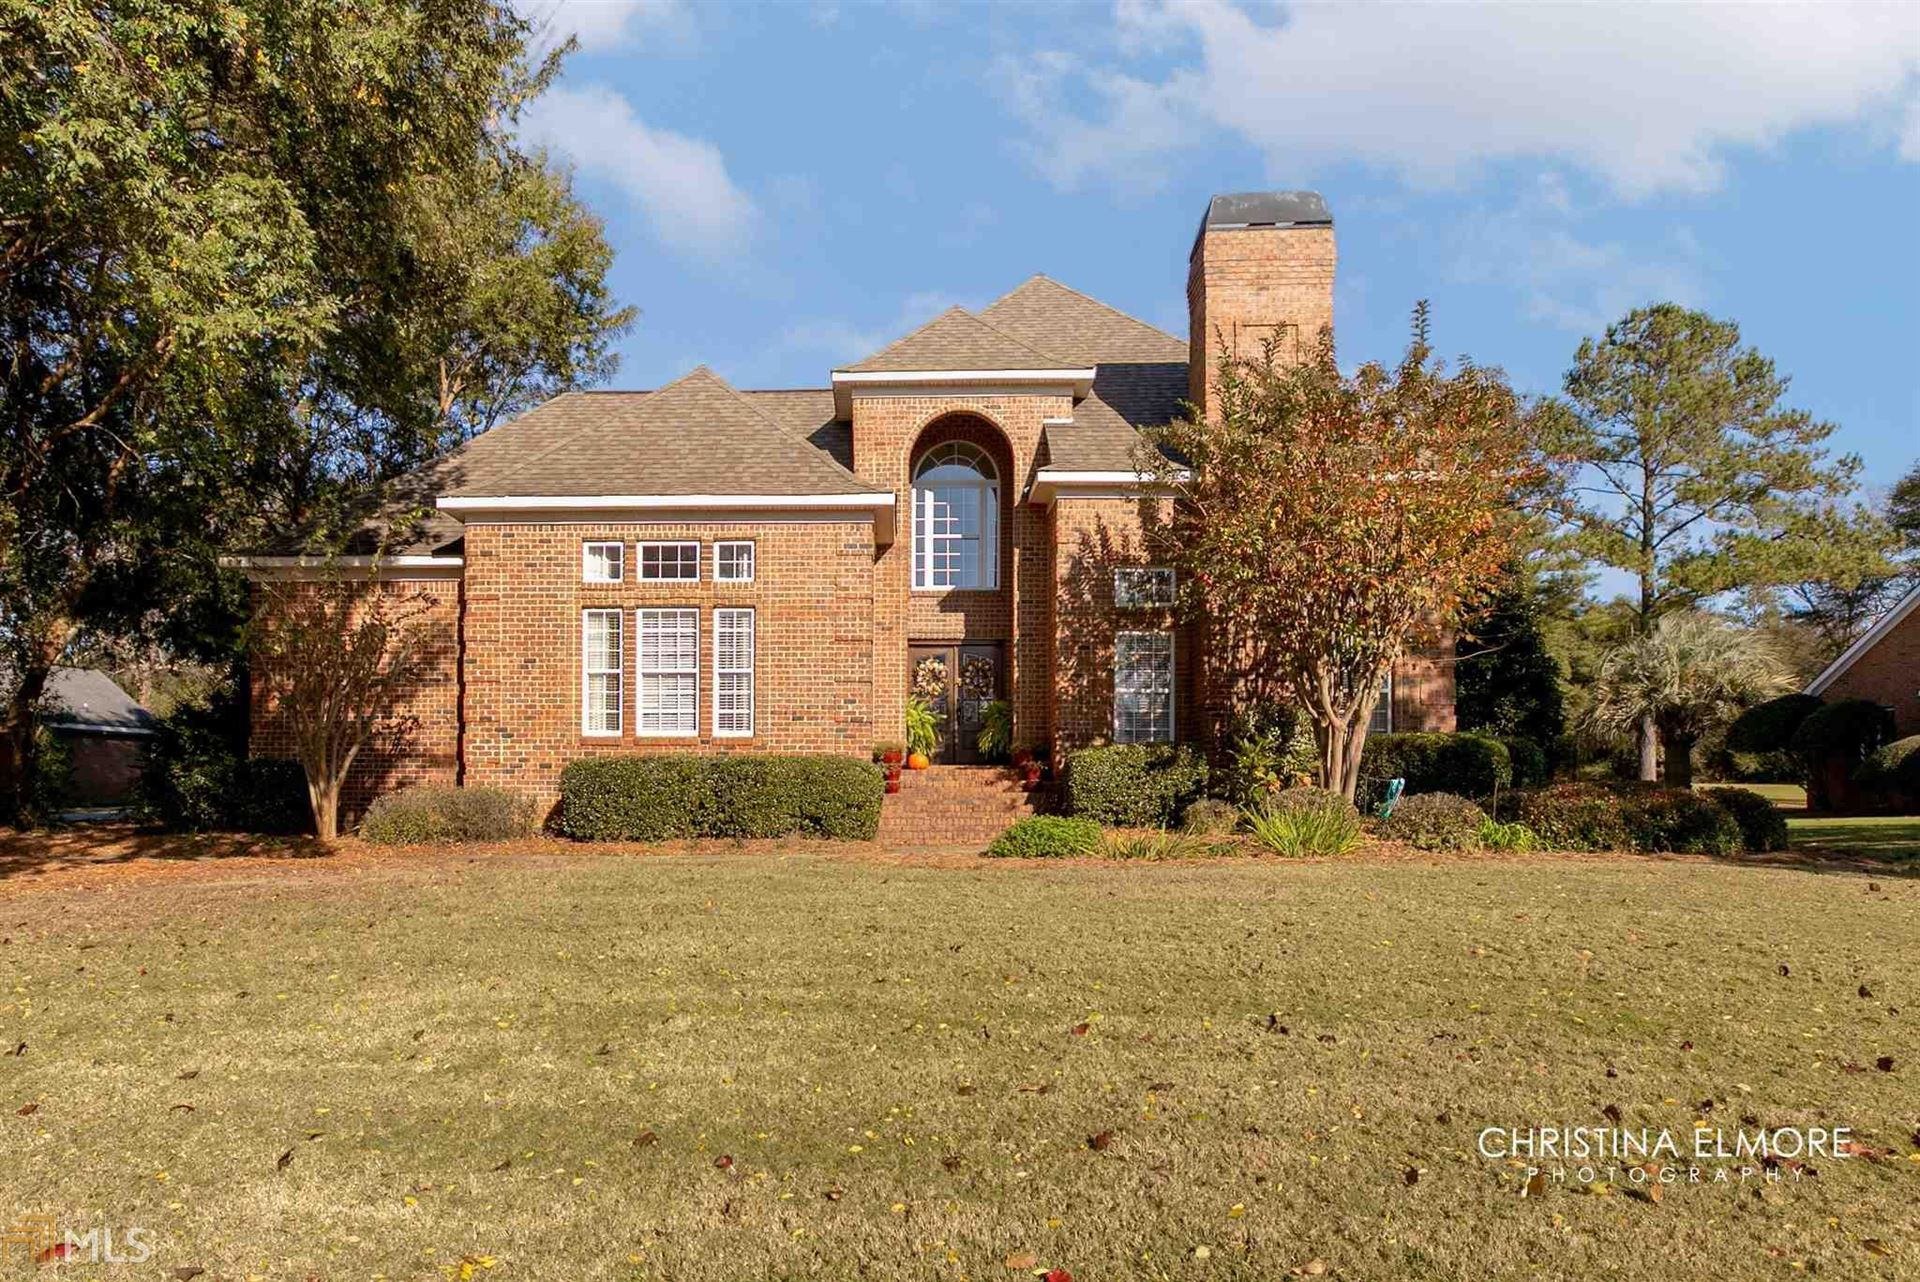 114 Heather Glen, Kathleen, GA 31047 - MLS#: 8894628